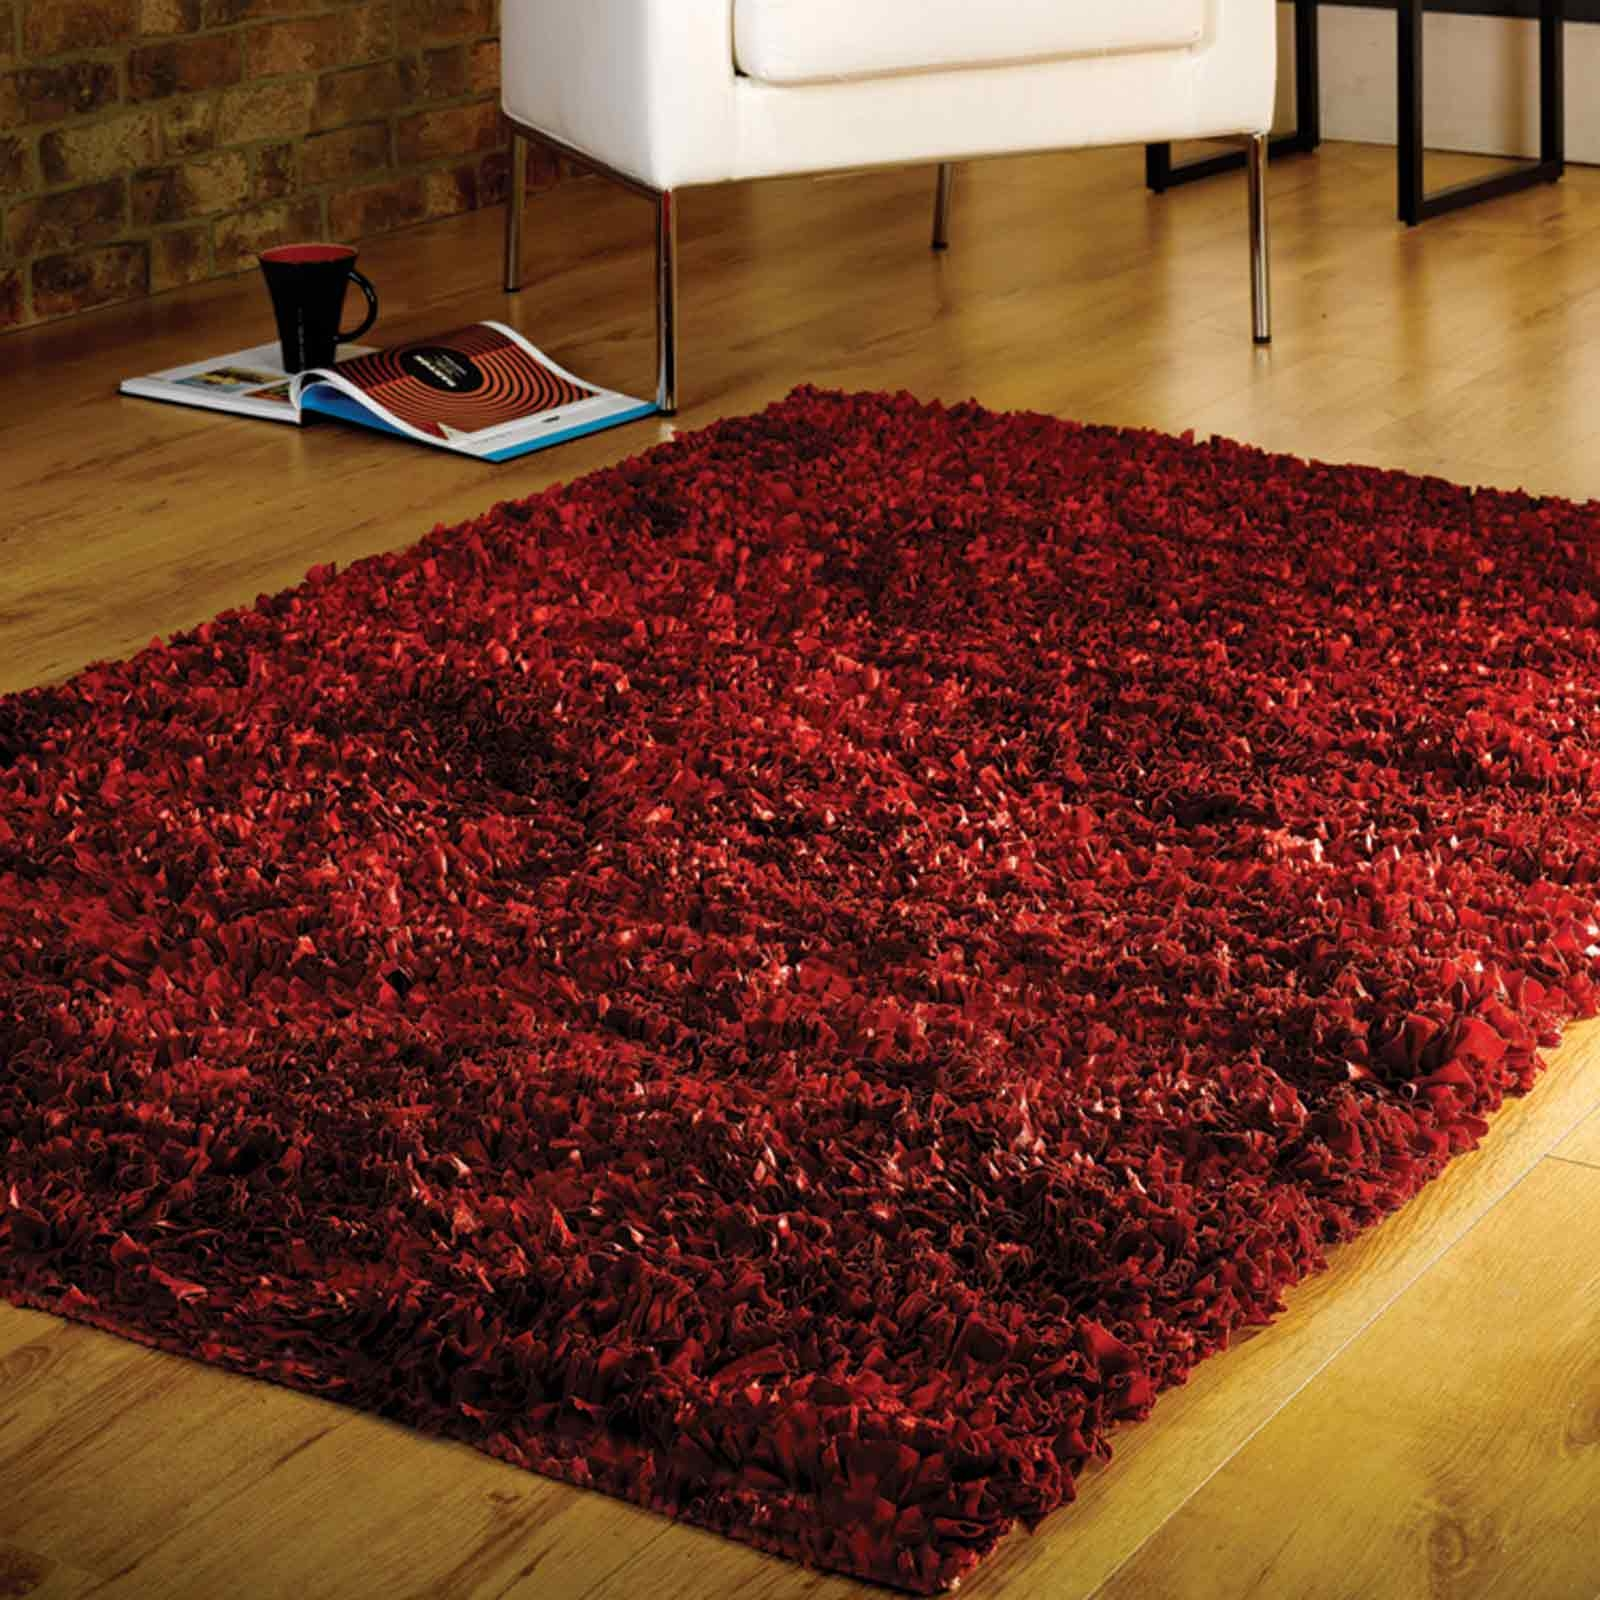 Area Rugs Astounding Large Shaggy Rugs 1215 Shaggy Area Rug Throughout Shaggy Rugs (Image 1 of 15)